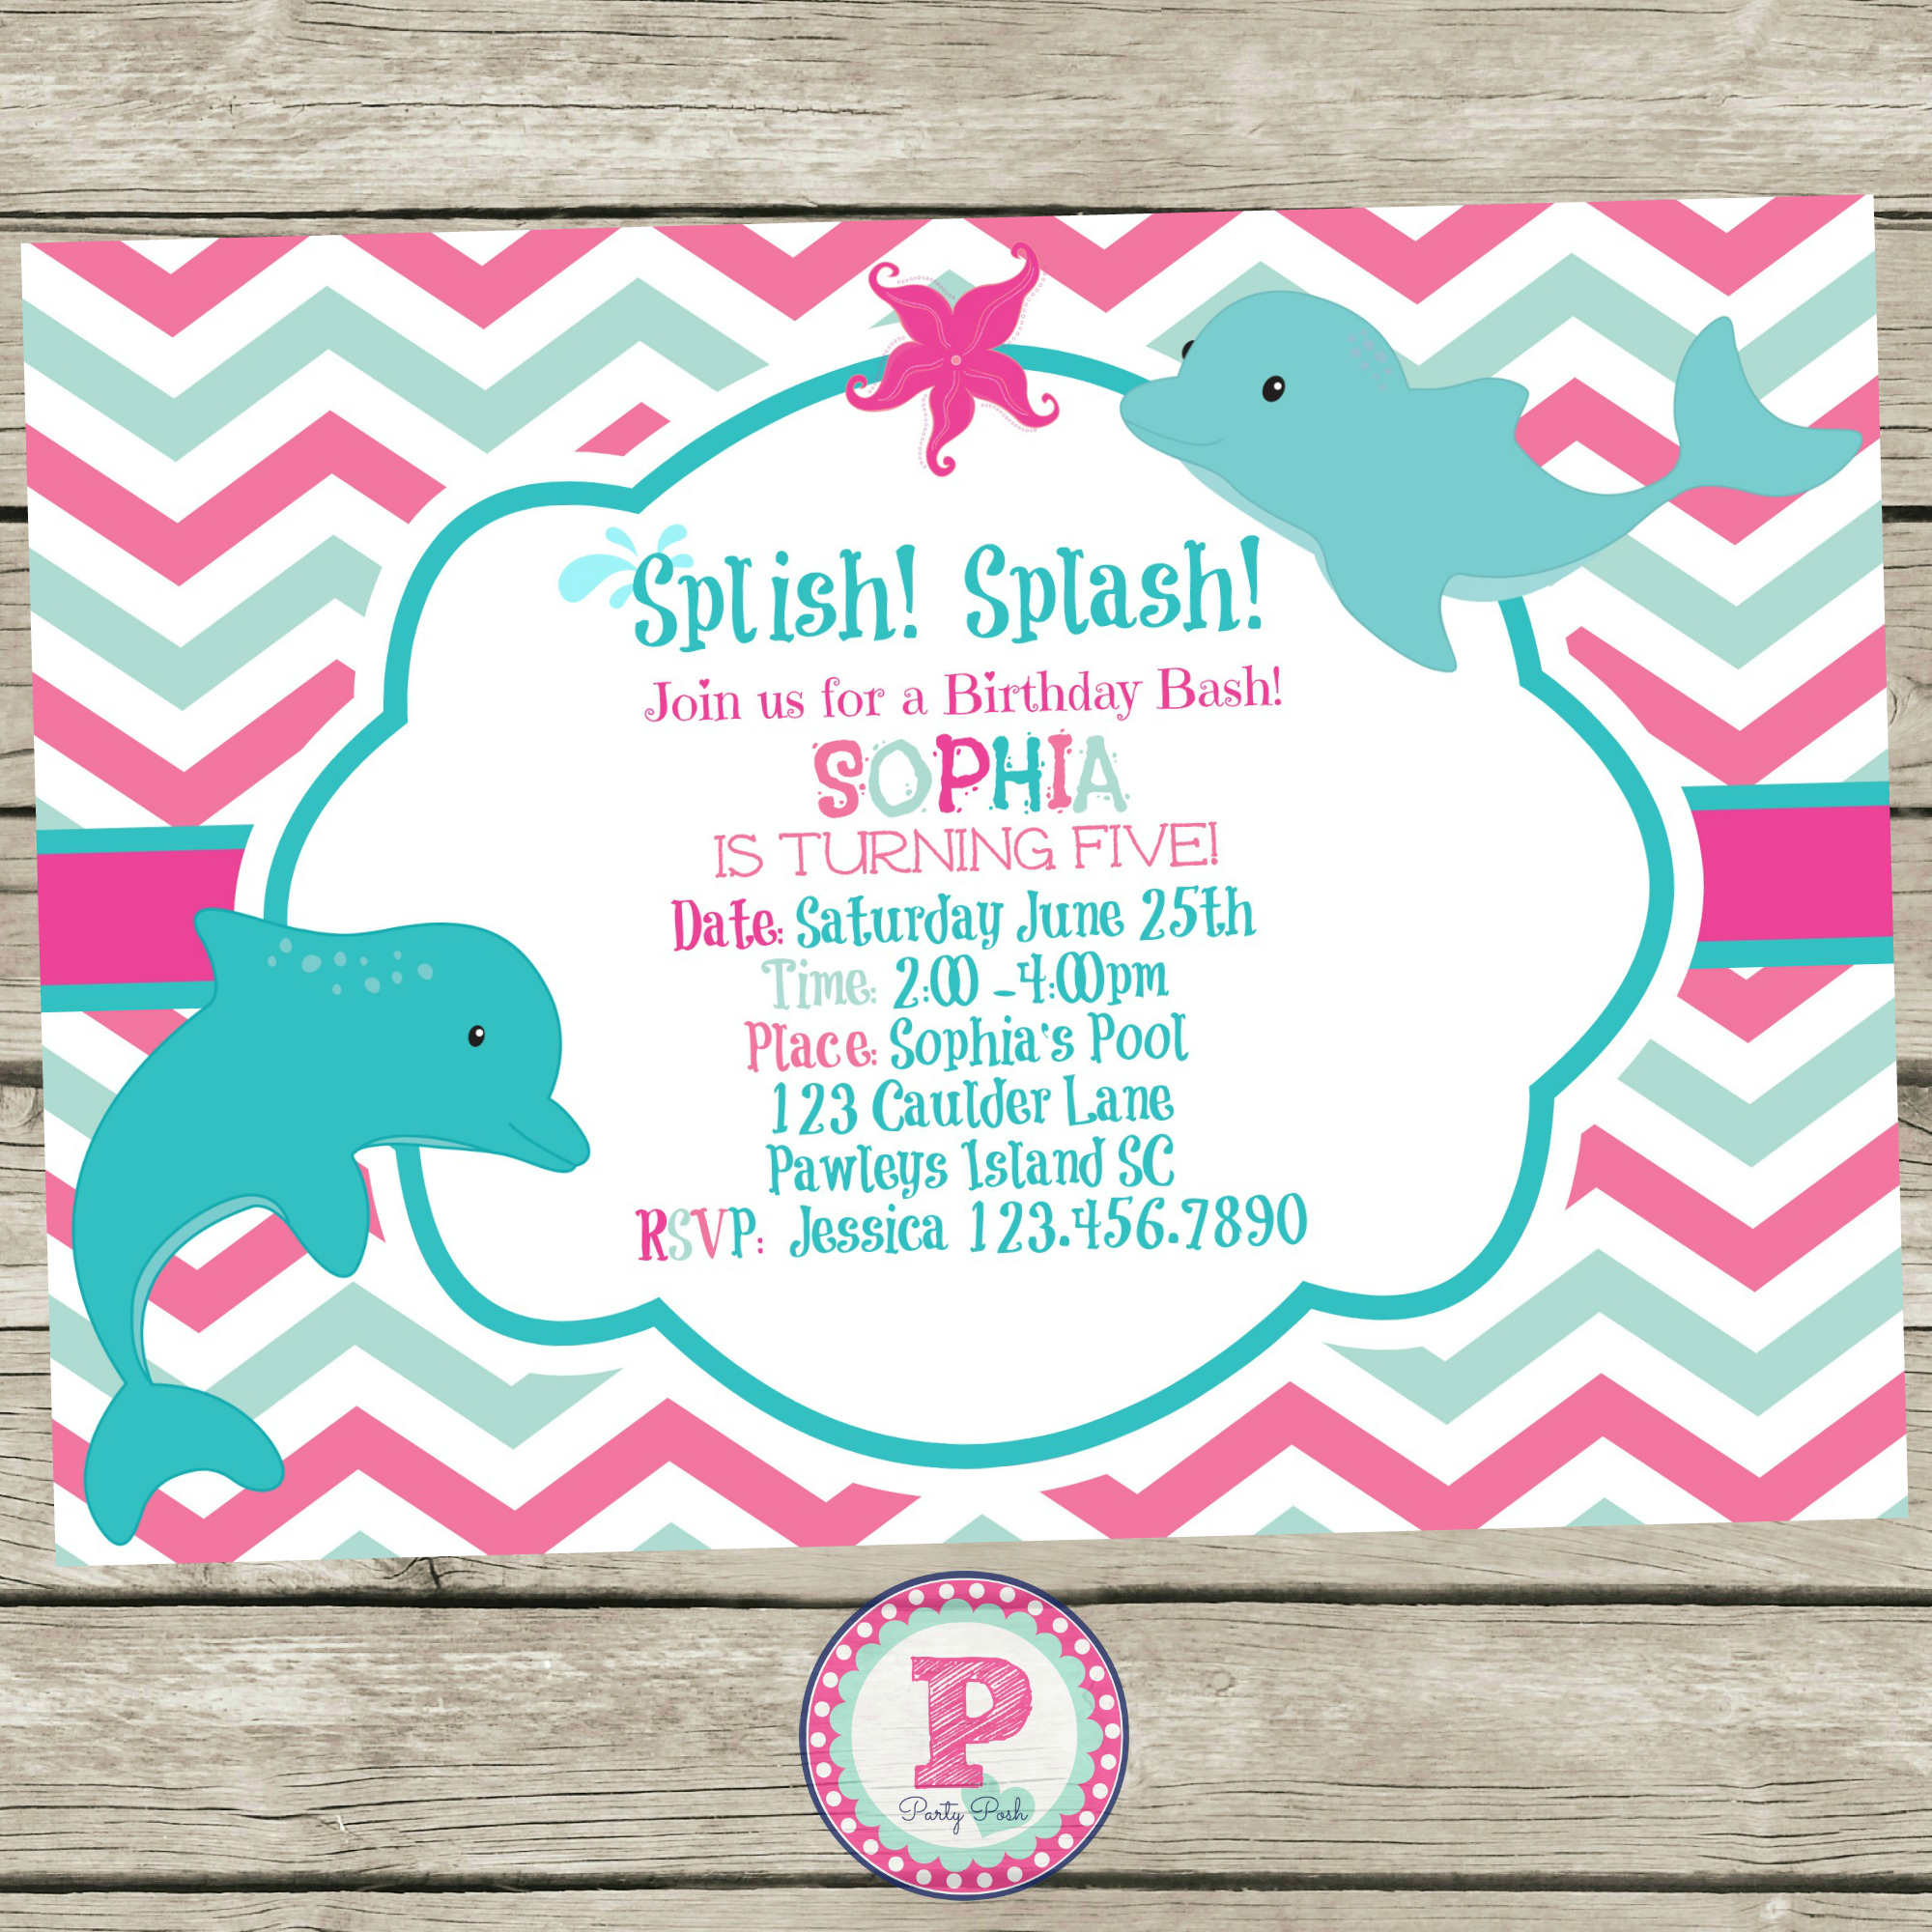 7 Images of Dolphin Birthday Party Invitation Printable Free